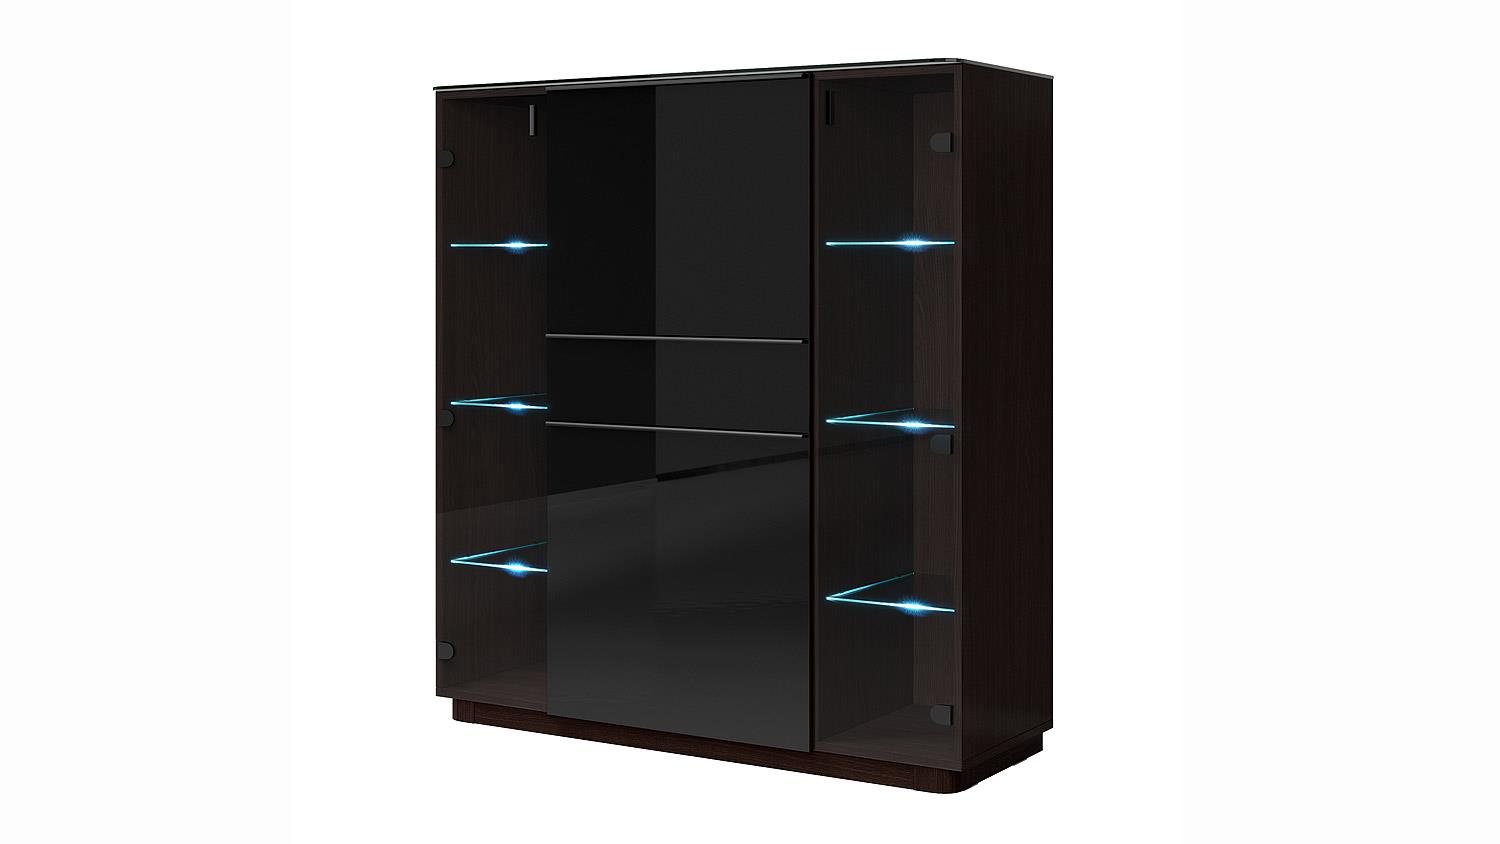 barschrank togos wm glas schwarz und wenge inkl led. Black Bedroom Furniture Sets. Home Design Ideas